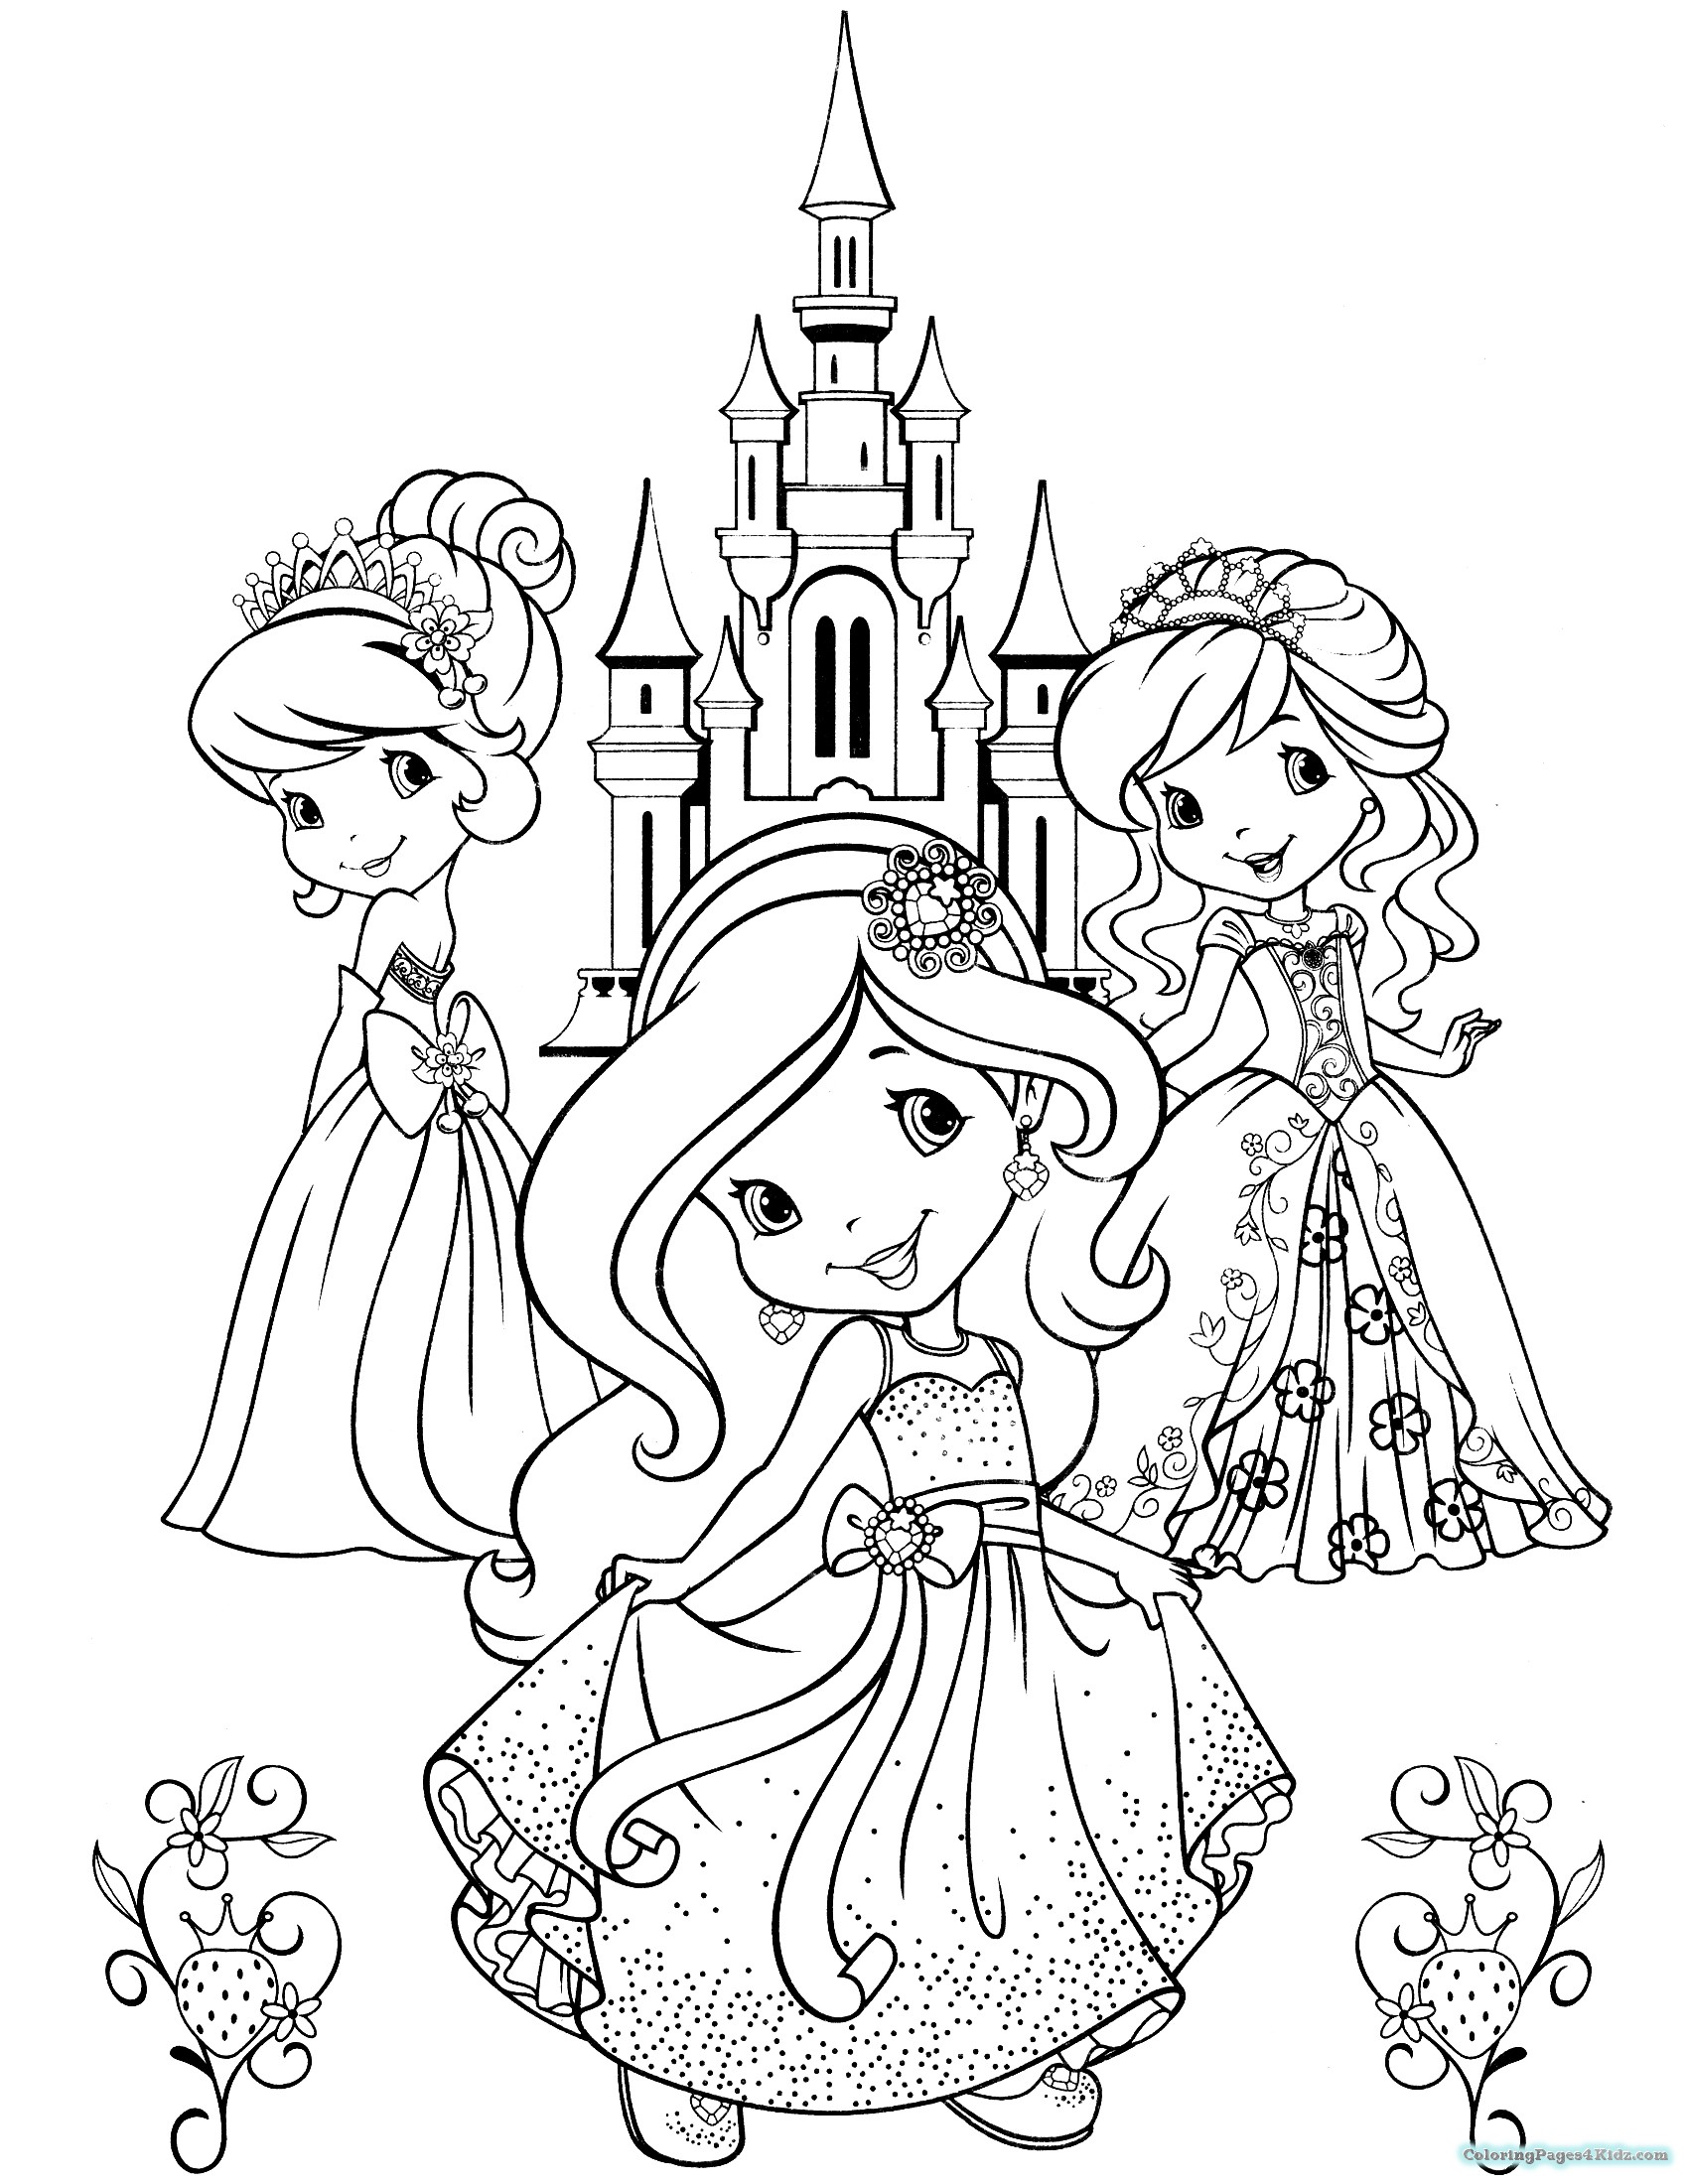 1700x2200 Strawberry Shortcake And All Friends Coloring Pages Coloring